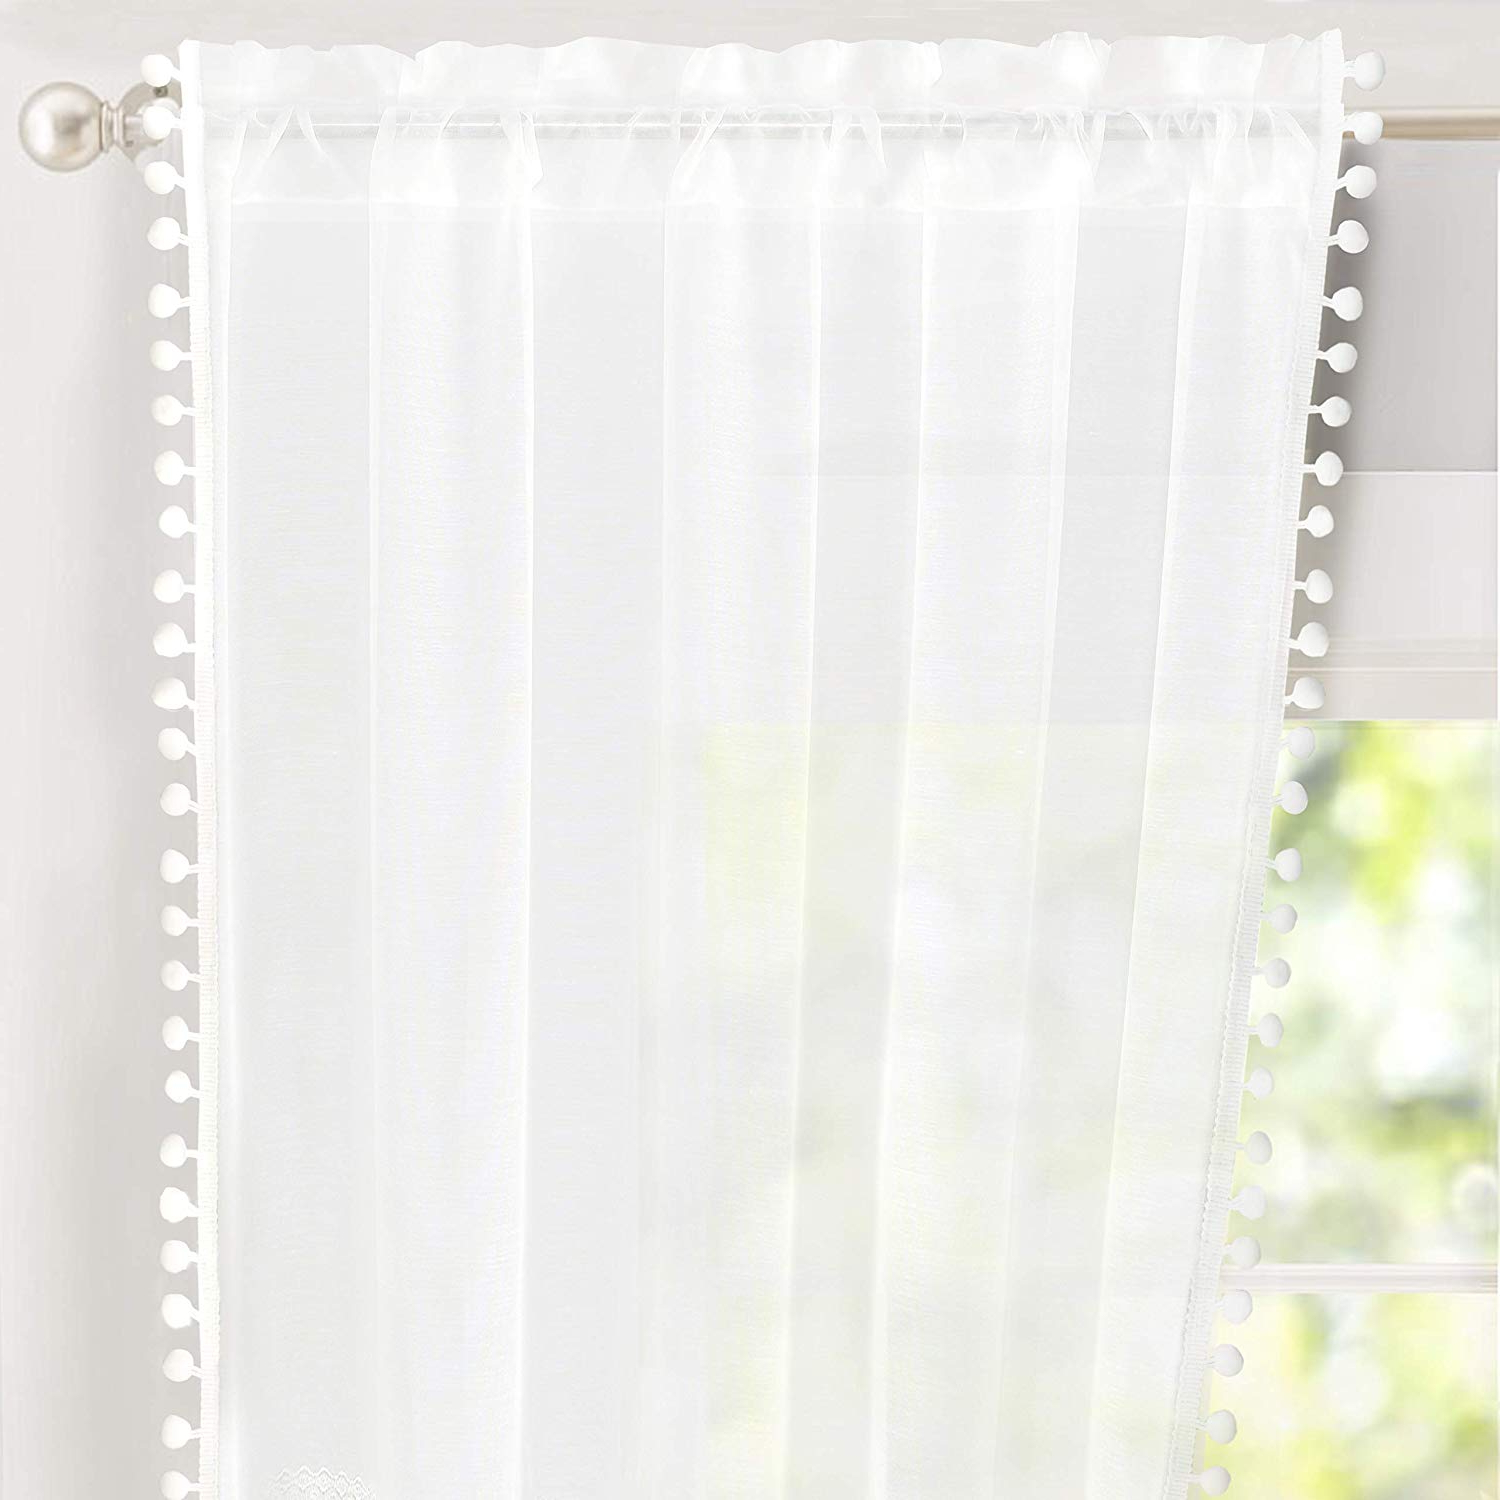 Driftaway Laura Pom Pom Trimmed White Voile Sheer Window Curtains 2 Panels  Rod Pocket Each Size 52 Inch84 Inch Plus 2 Inch Header White With Recent Tassels Applique Sheer Rod Pocket Top Curtain Panel Pairs (View 3 of 20)